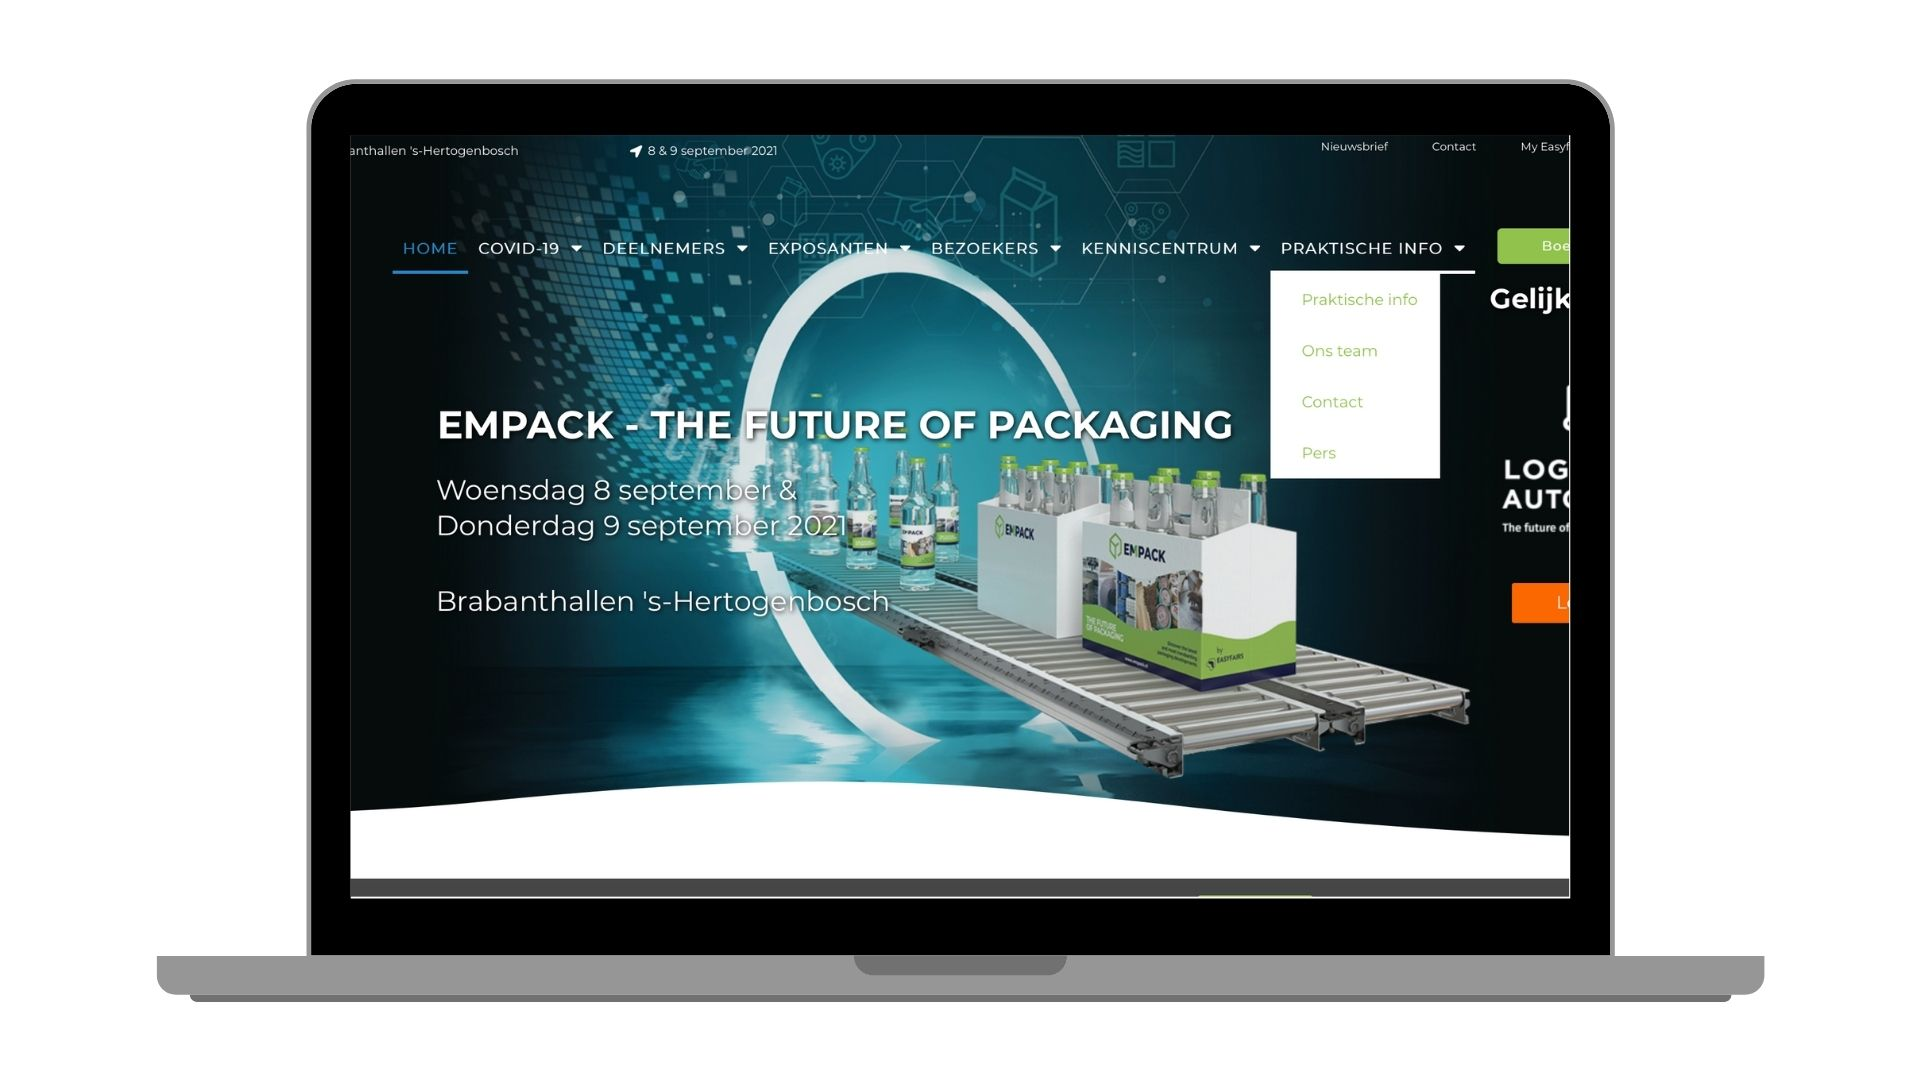 EMPACK - THE FUTURE OF PACKAGING